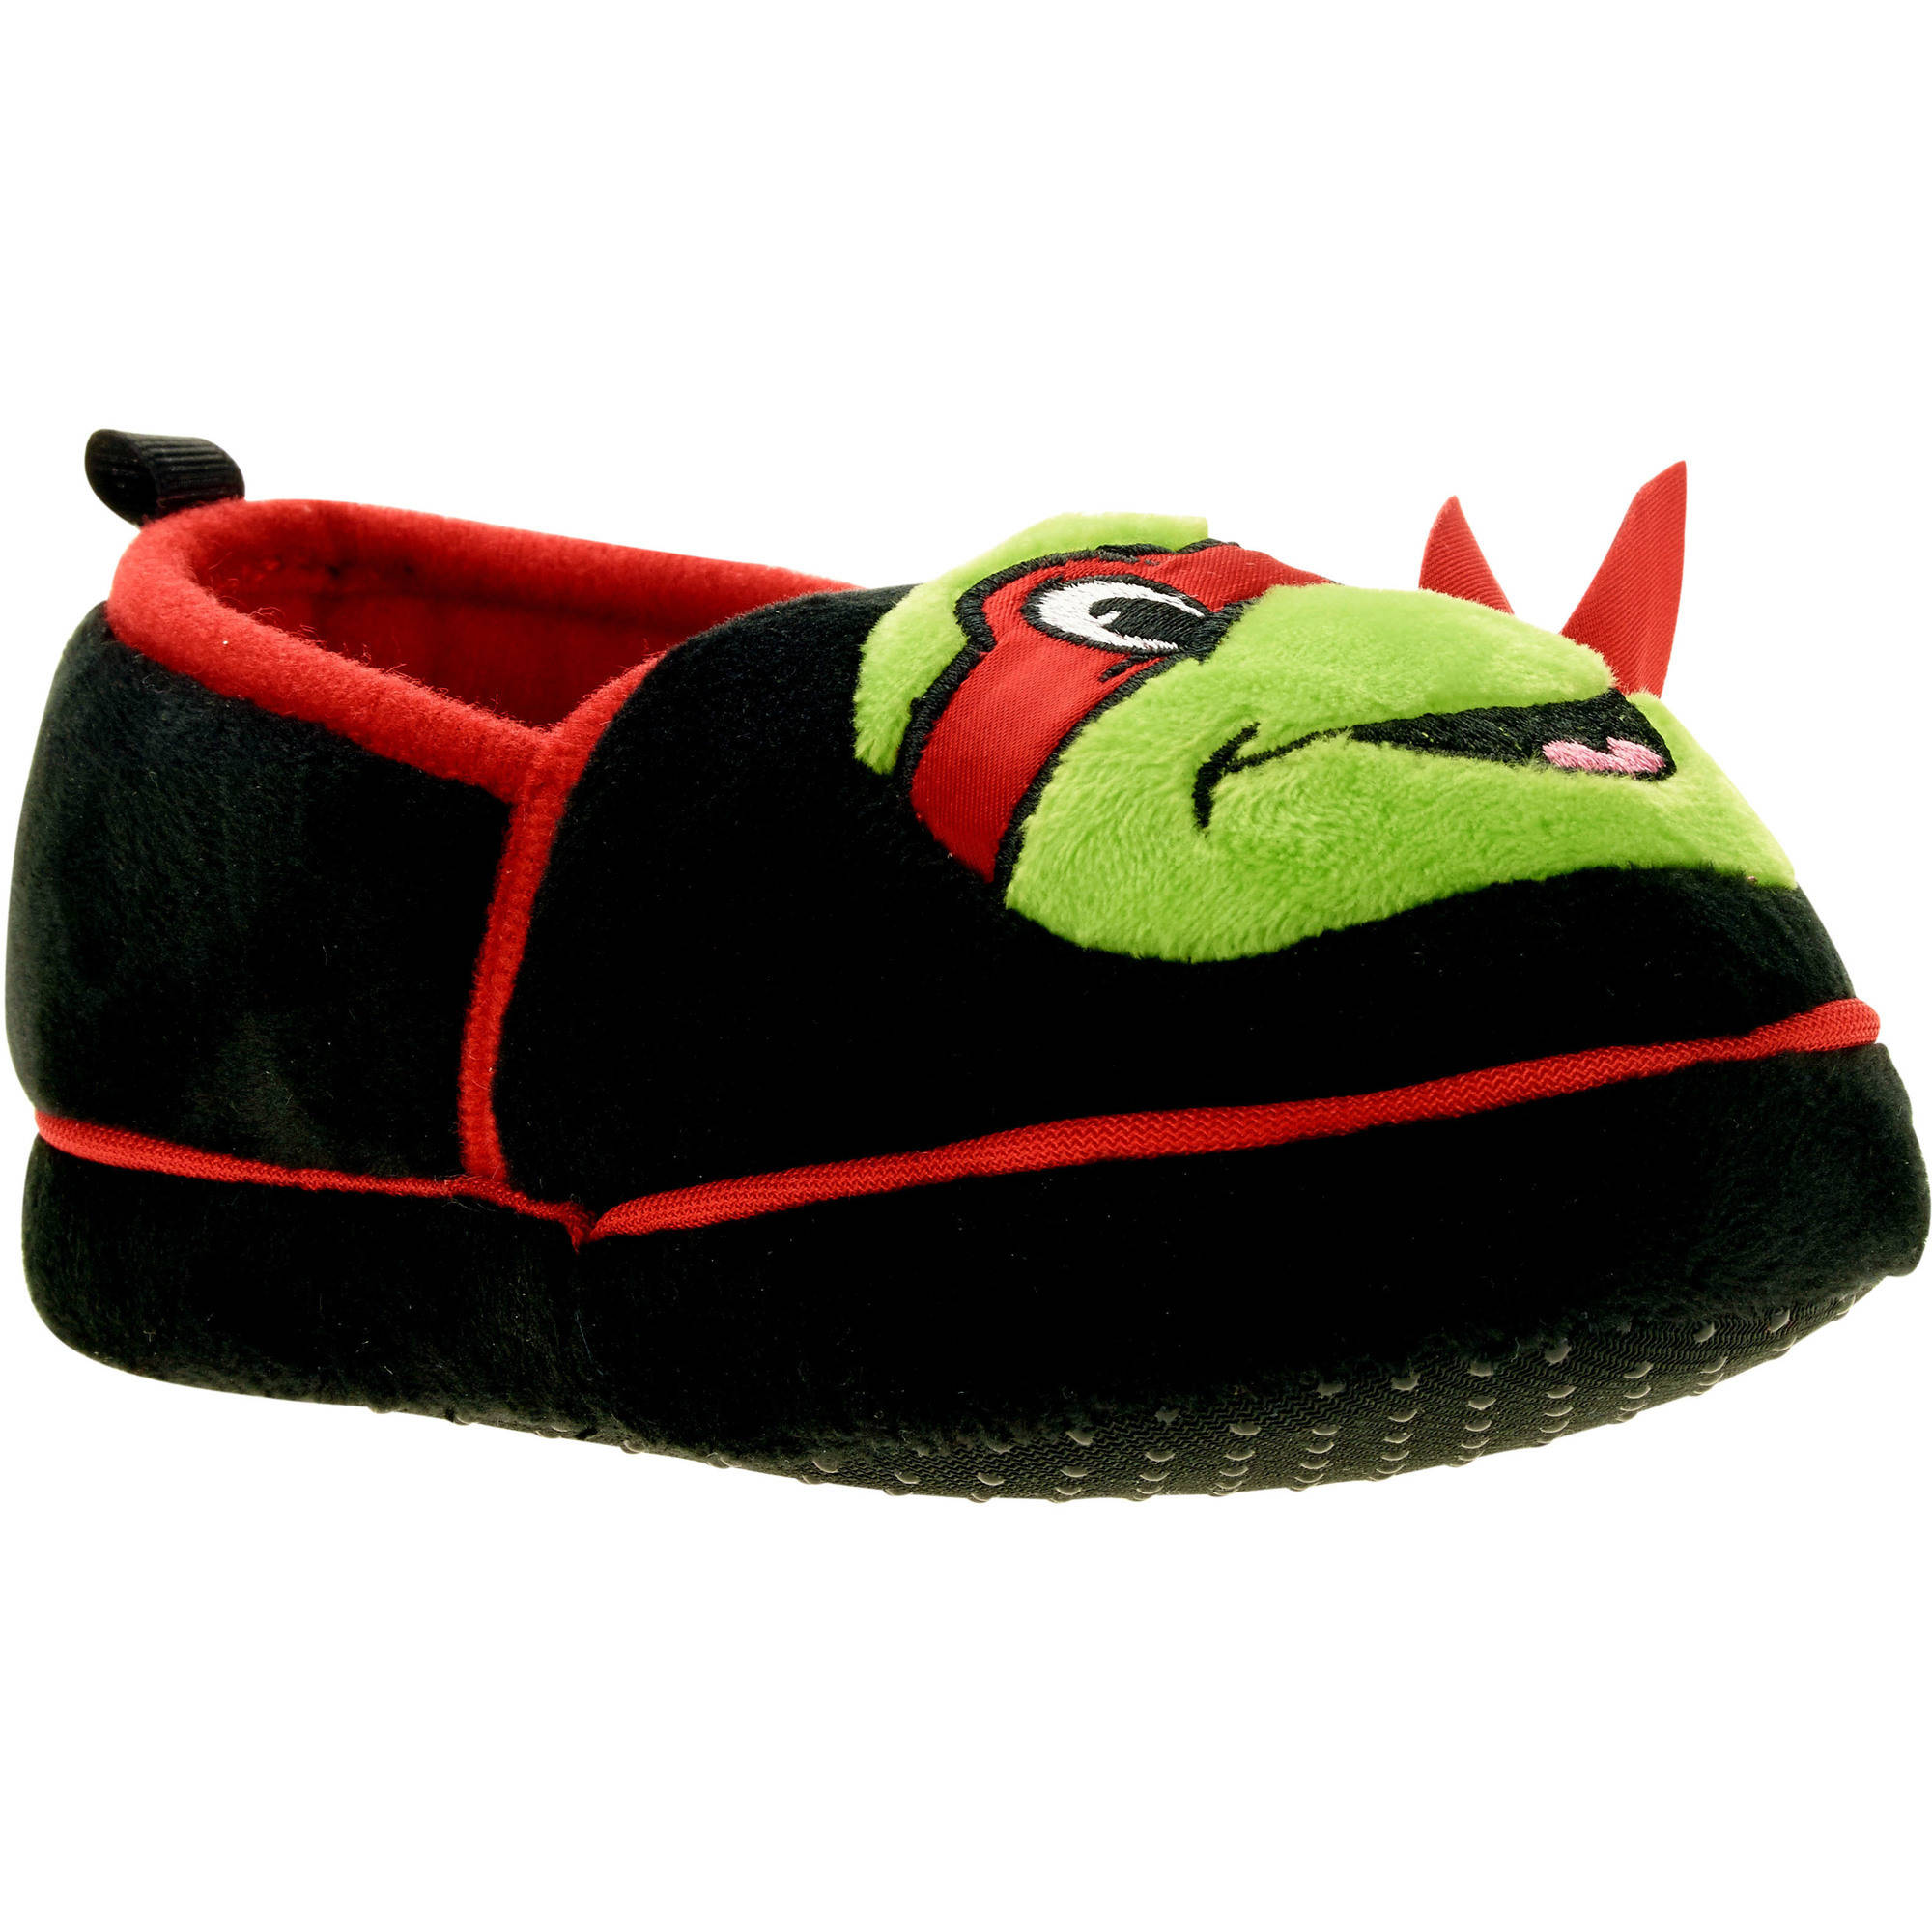 Turtles Boy's Toddler Slipper